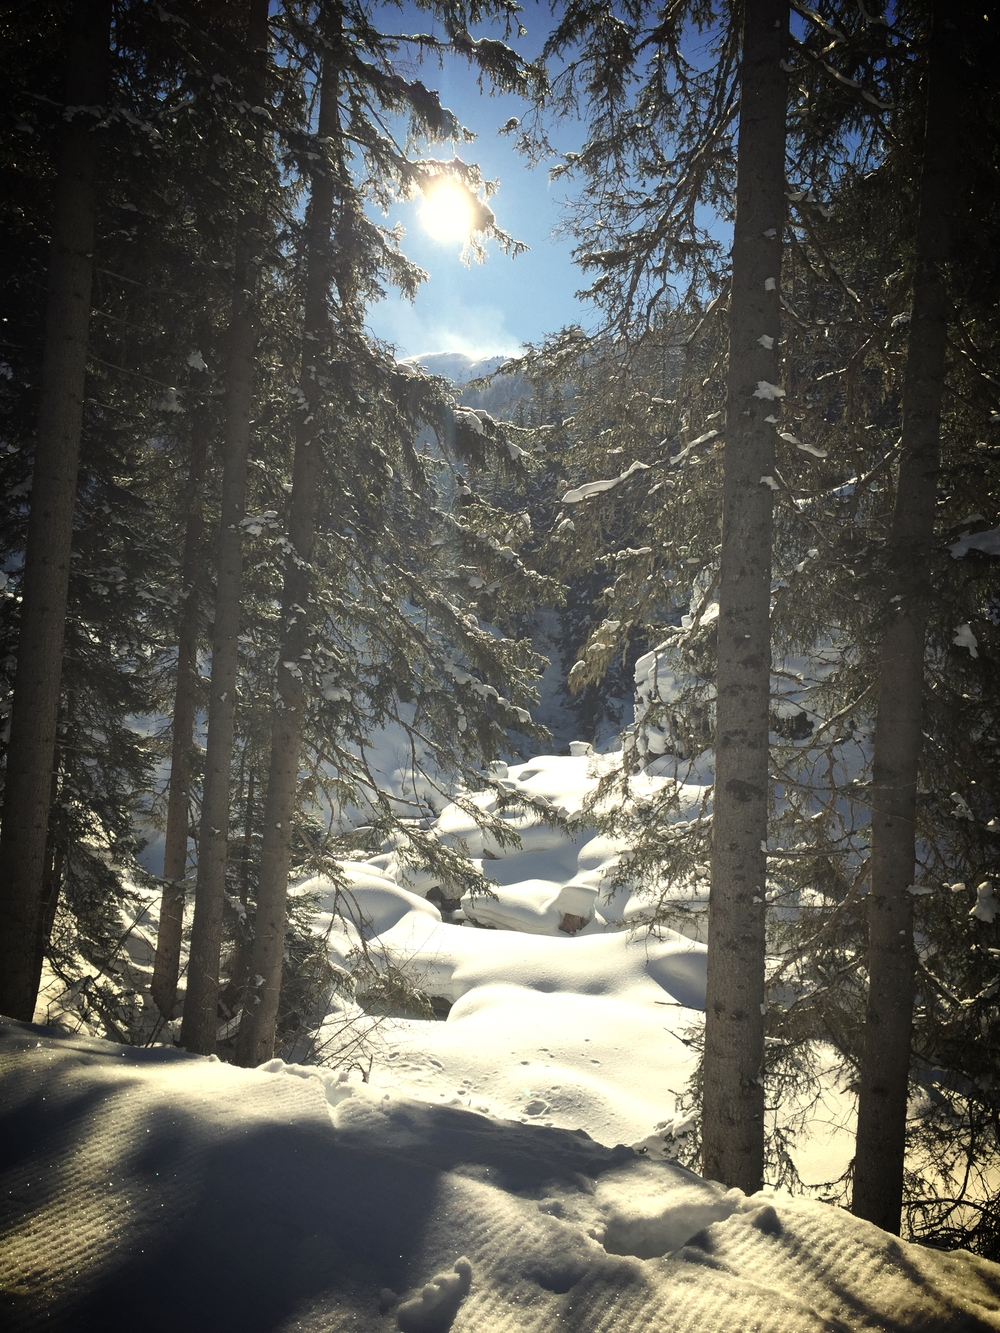 Mid Winter conditions shaping up well for beginning of March in Davos. Out training on the trails in  Flüela  valley.